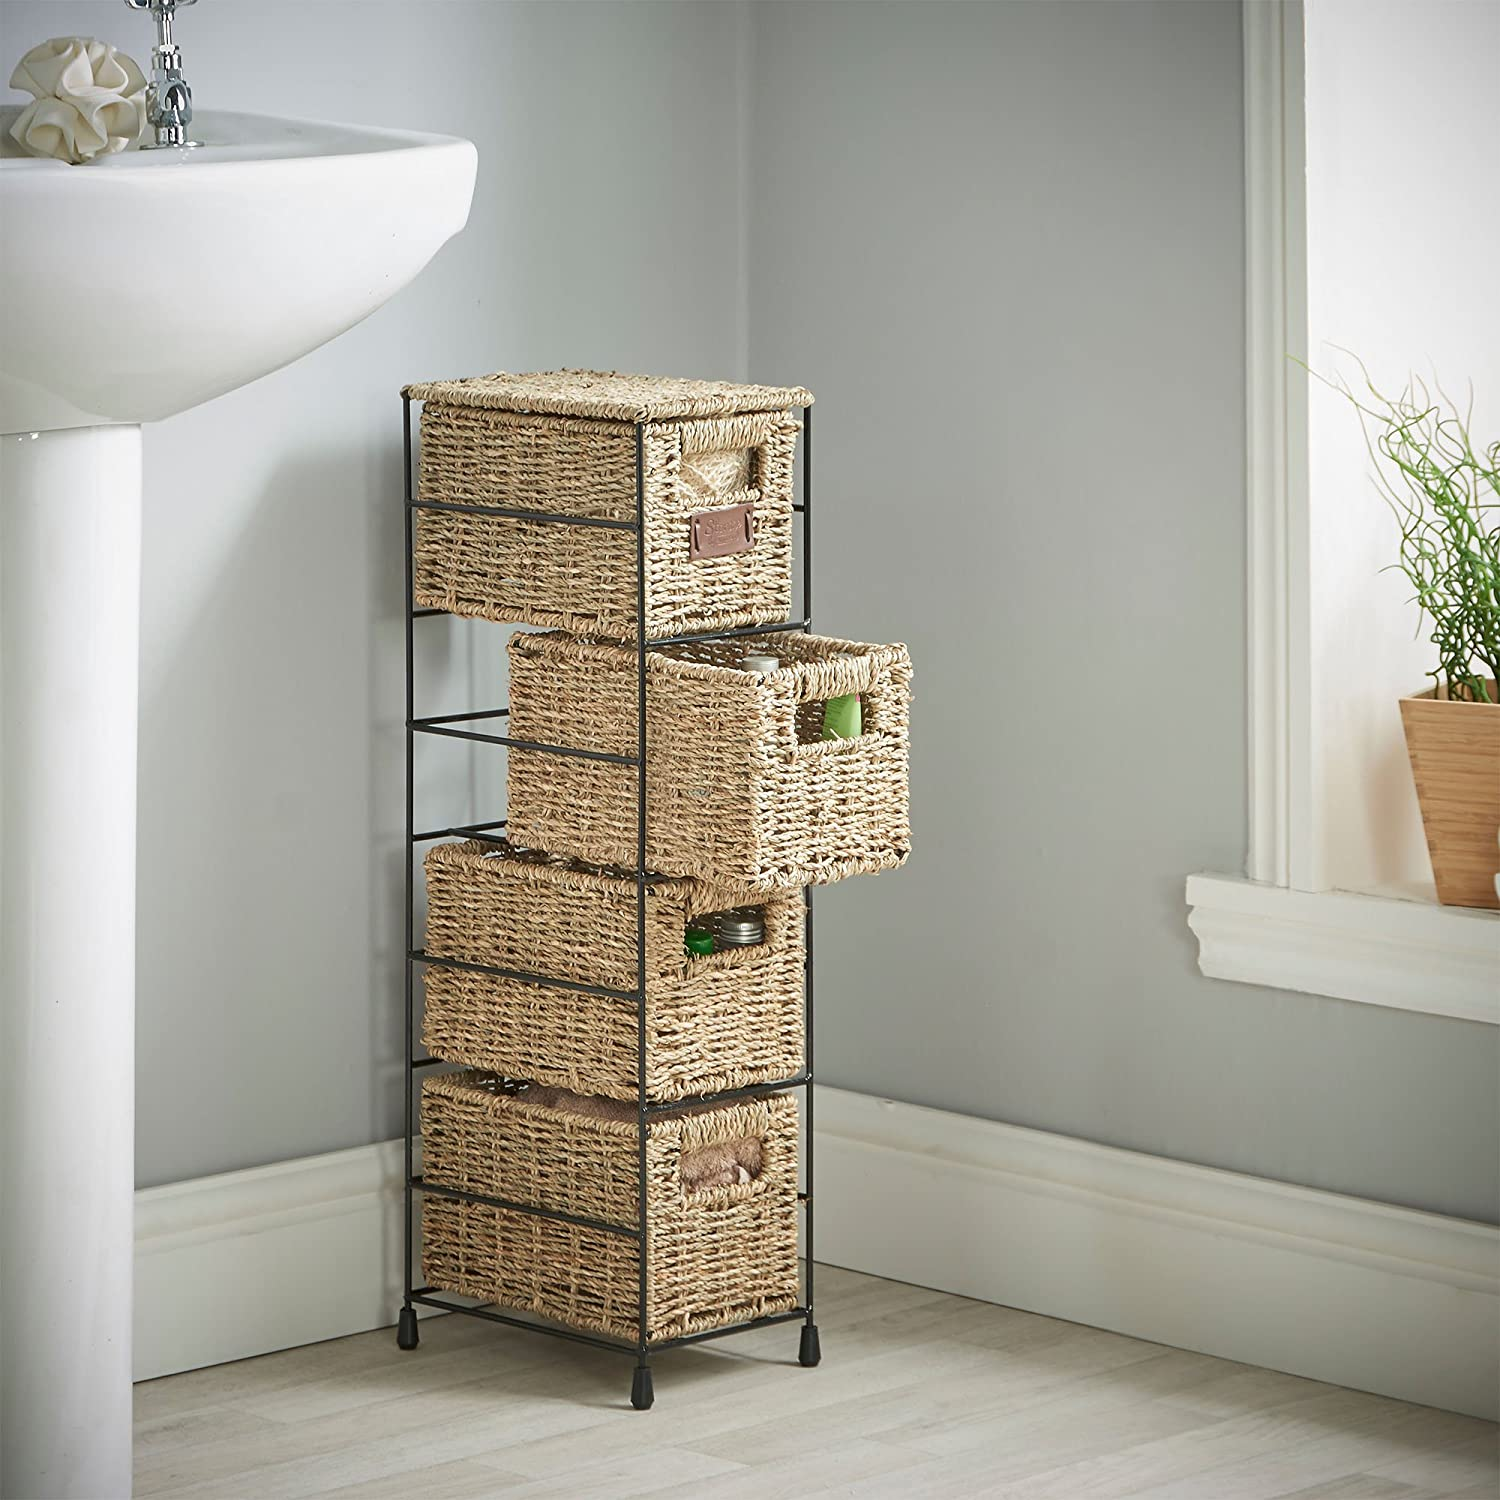 Superbe Amazon.com: VonHaus 4 Tier Small Seagrass Basket Storage Tower Unit With  Metal Frame   Ideal For Small Bathrooms U0026 Home Storage (H25.4 X W9.5 X  D6.7): Home ...